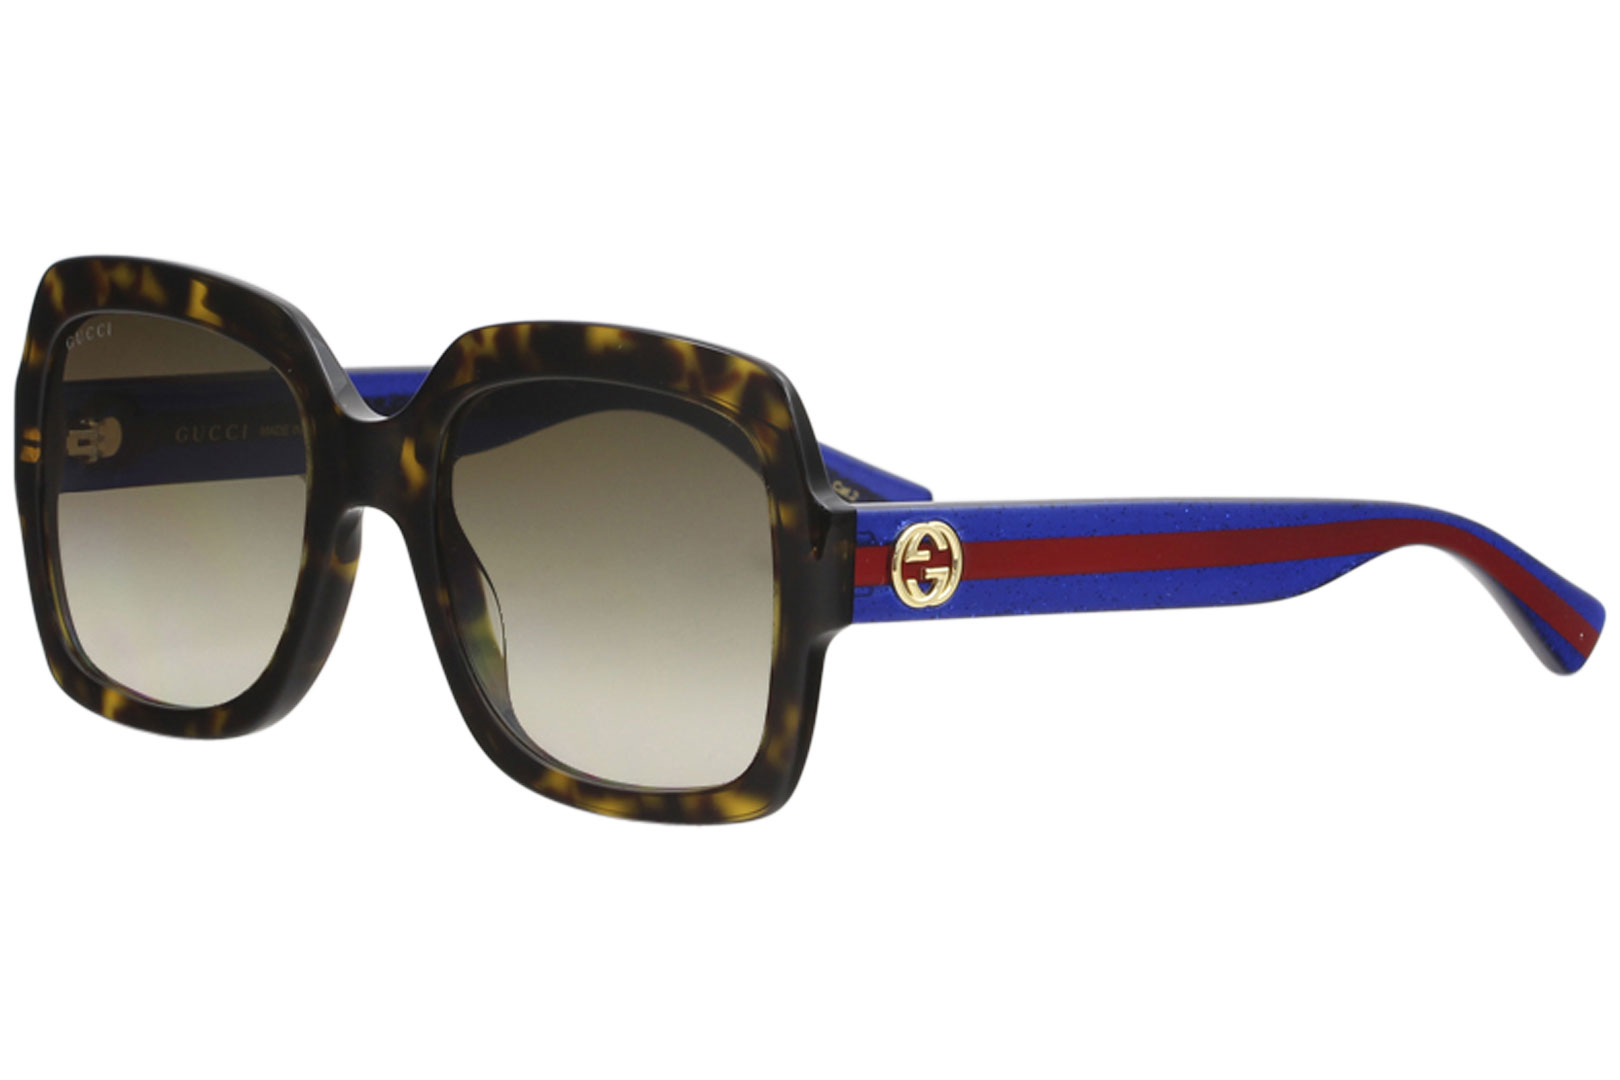 807b63e1b1f Gucci Women s GG0036S GG 0036 S 004 Havana Blue Red Sunglasses 54mm ...